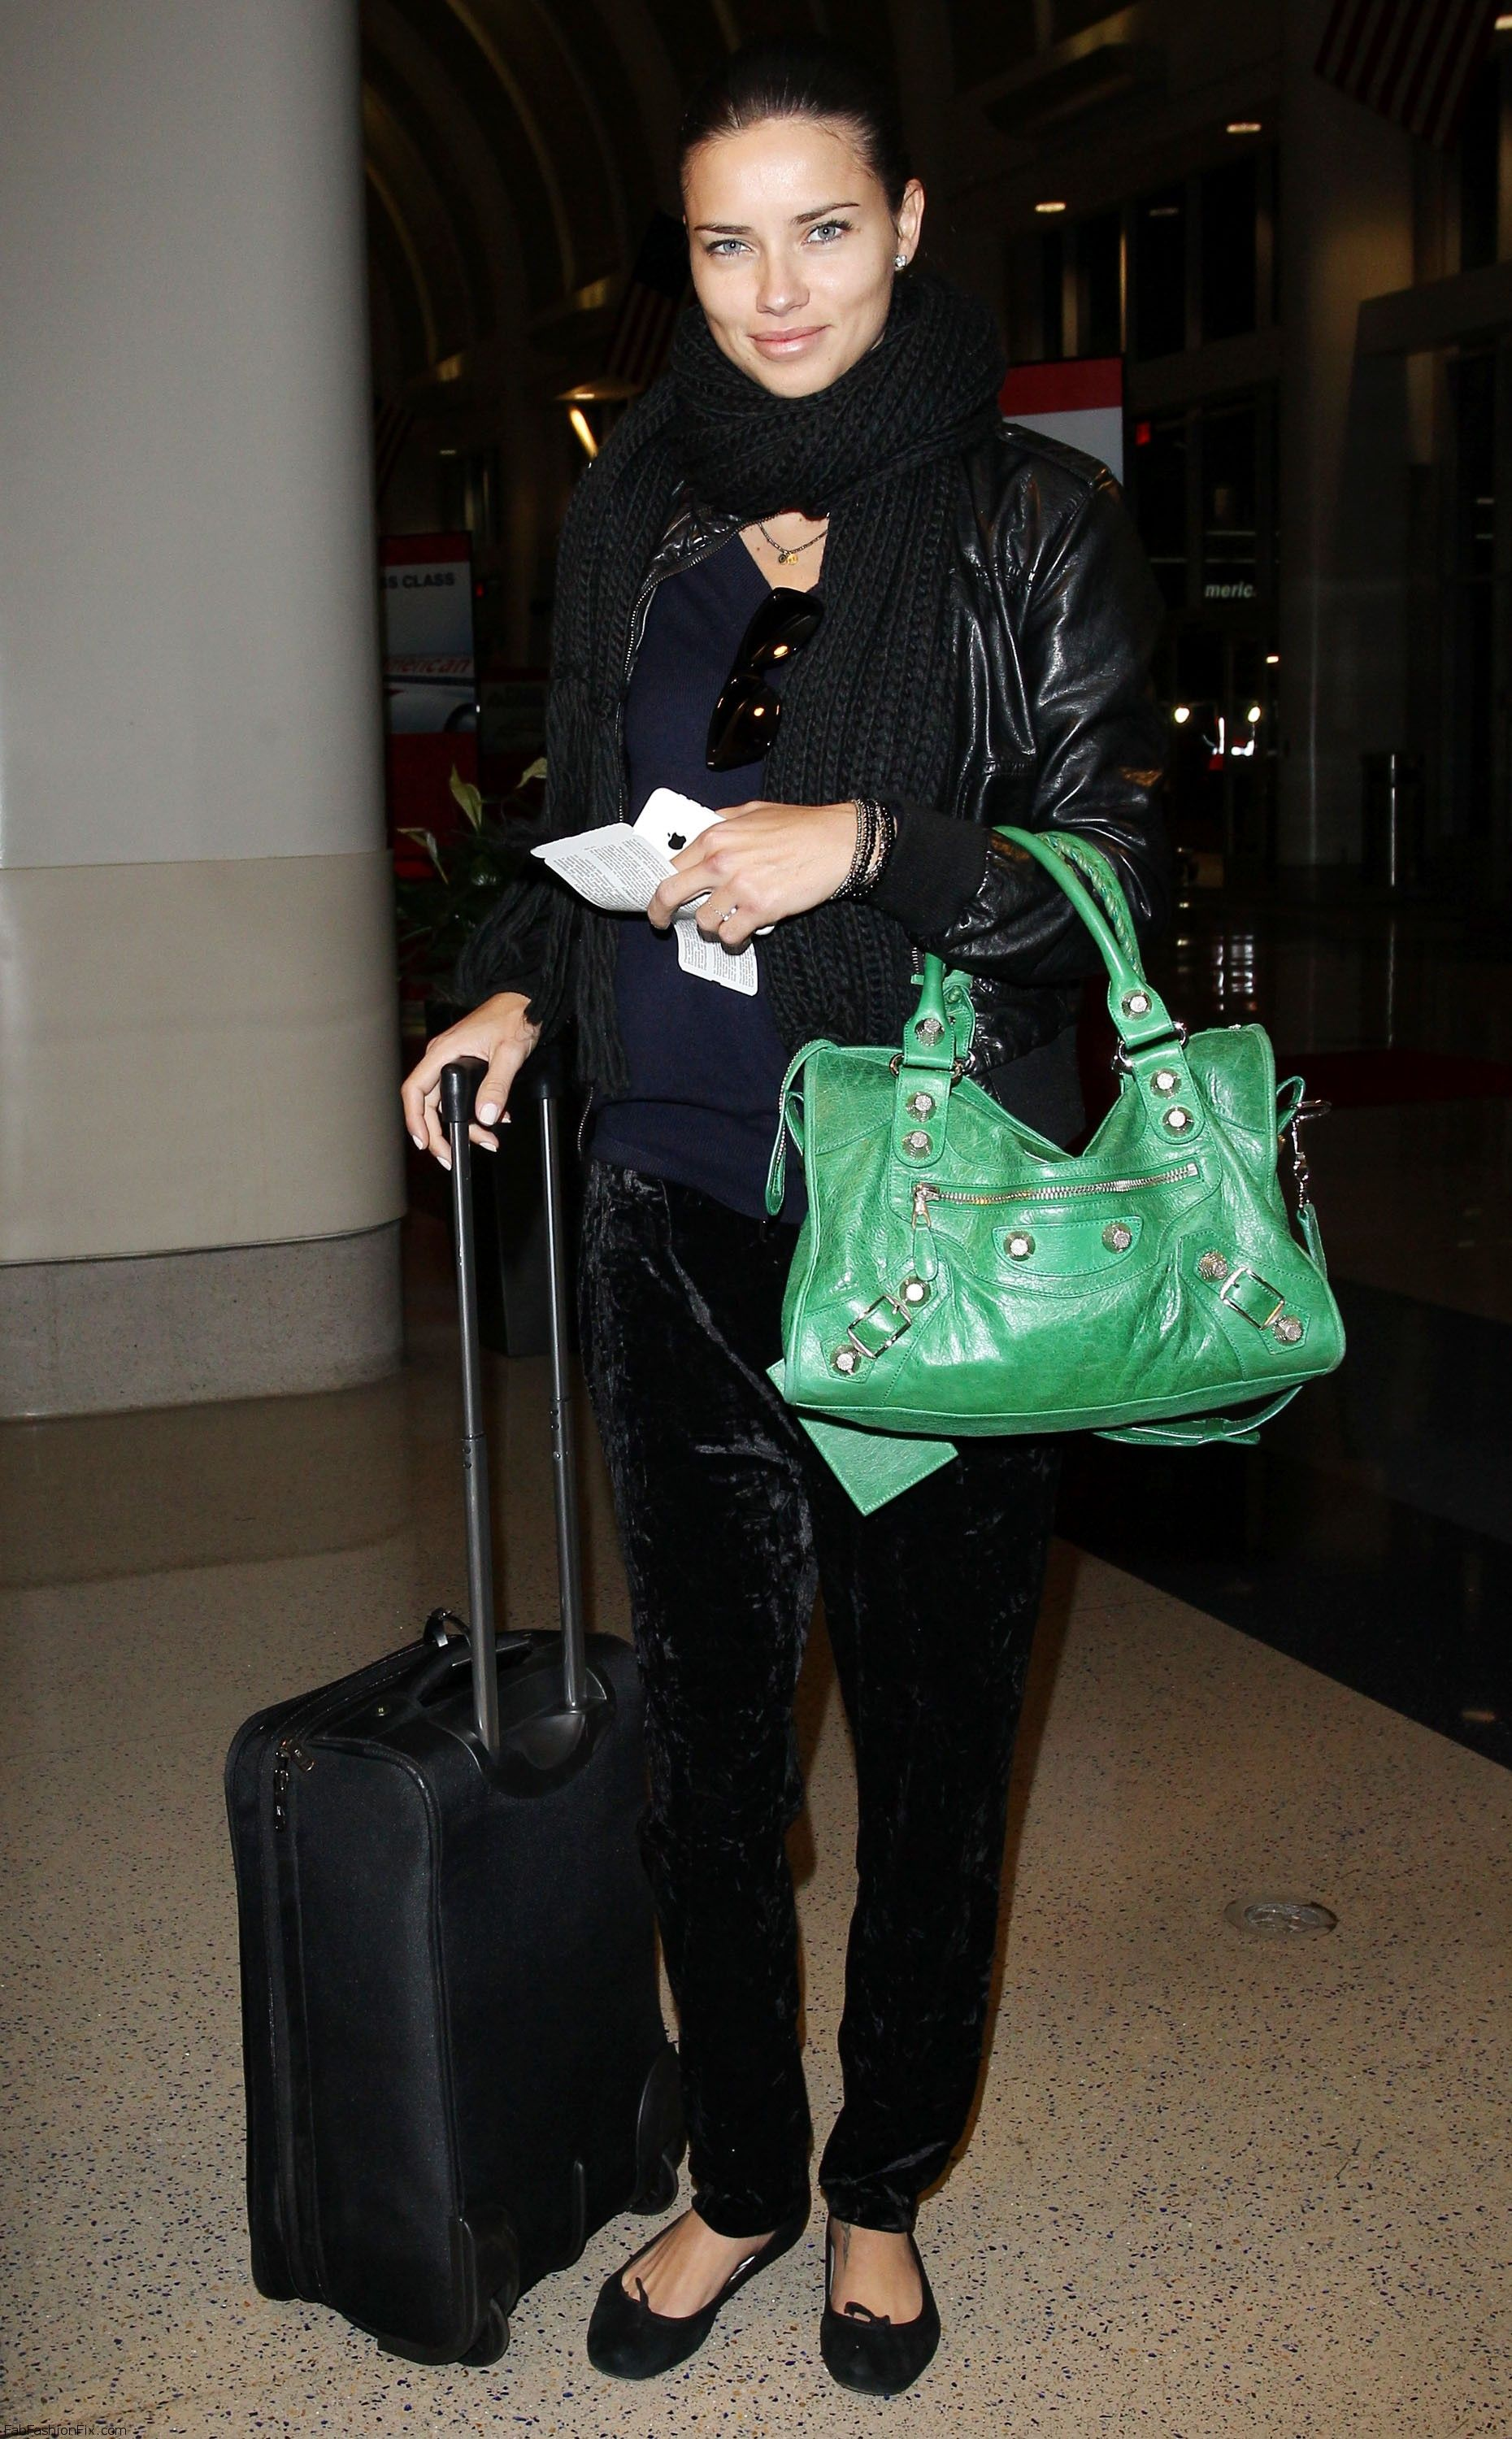 Adriana Lima arrives at the Los Angeles International Airport